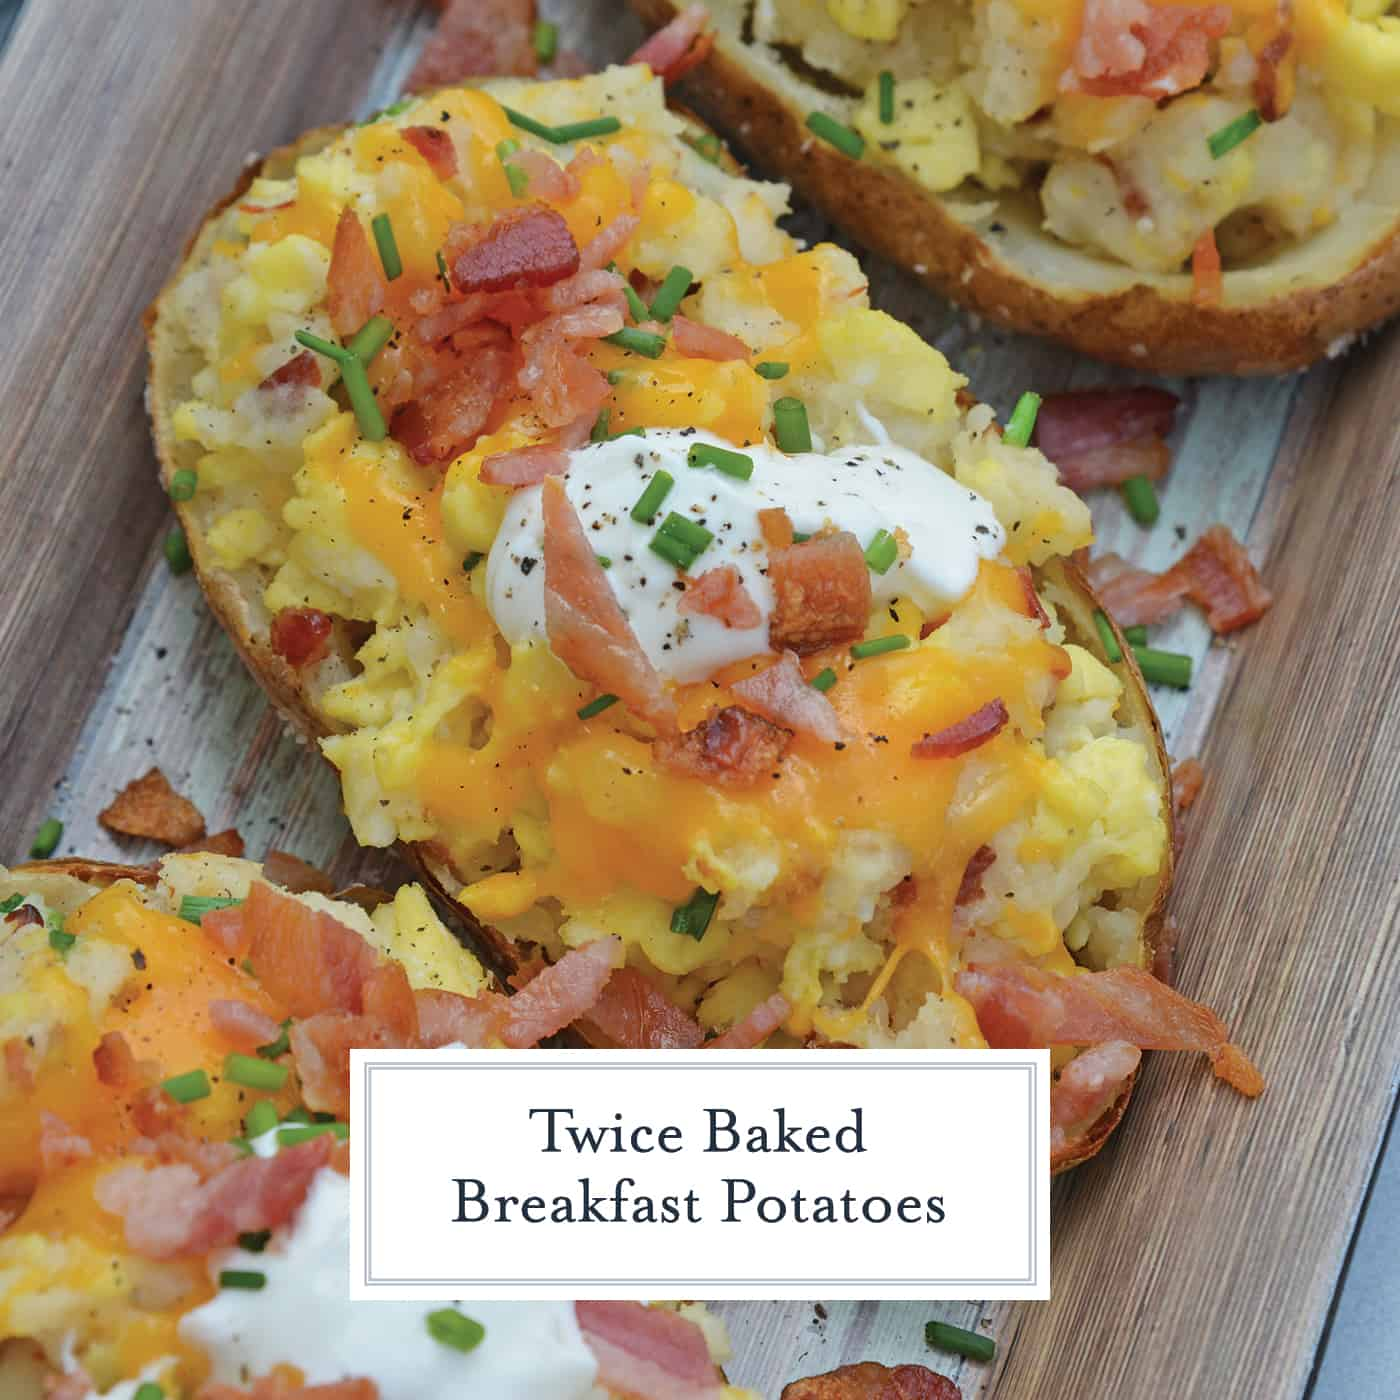 Twice Baked Breakfast Potatoes use leftover potatoes with scrambled eggs, cheddar cheese, chives, sour cream and BACON for the perfect easy breakfast recipe. #breakfastpotatoes www.savoryexperiments.com